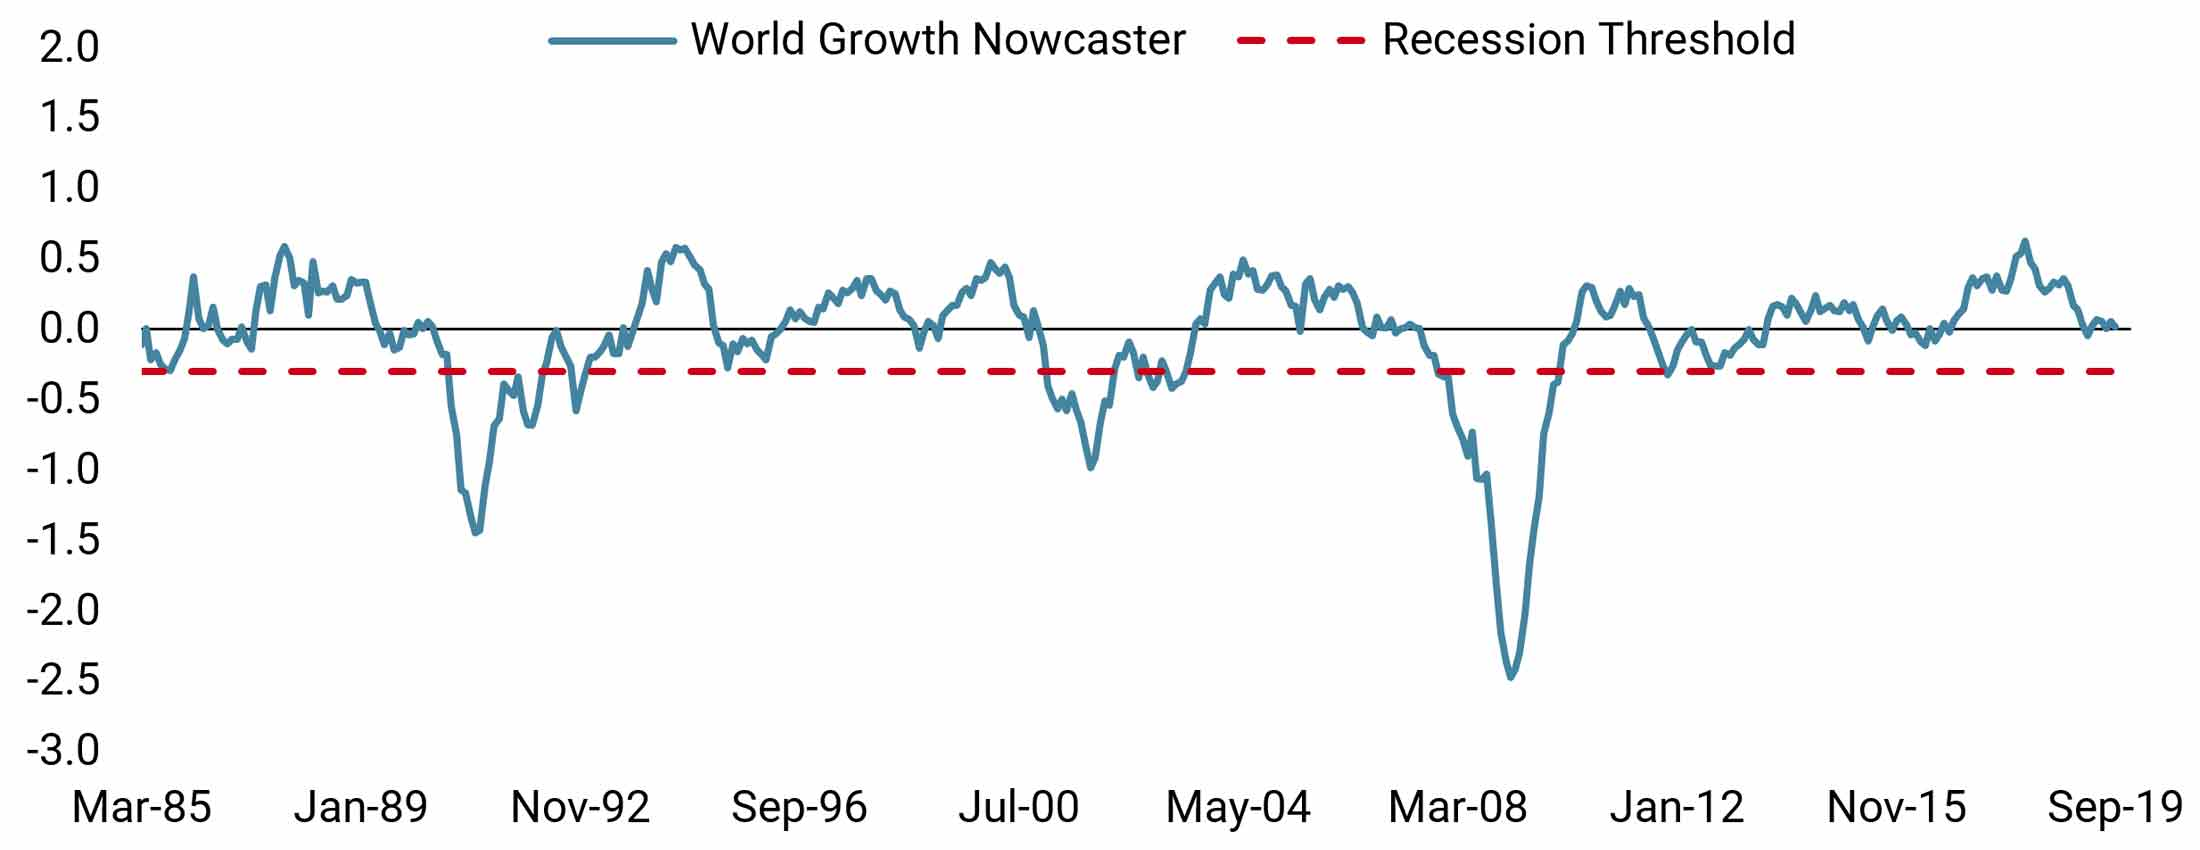 Figure 2: World Growth Nowcaster vs. Recession Threshold